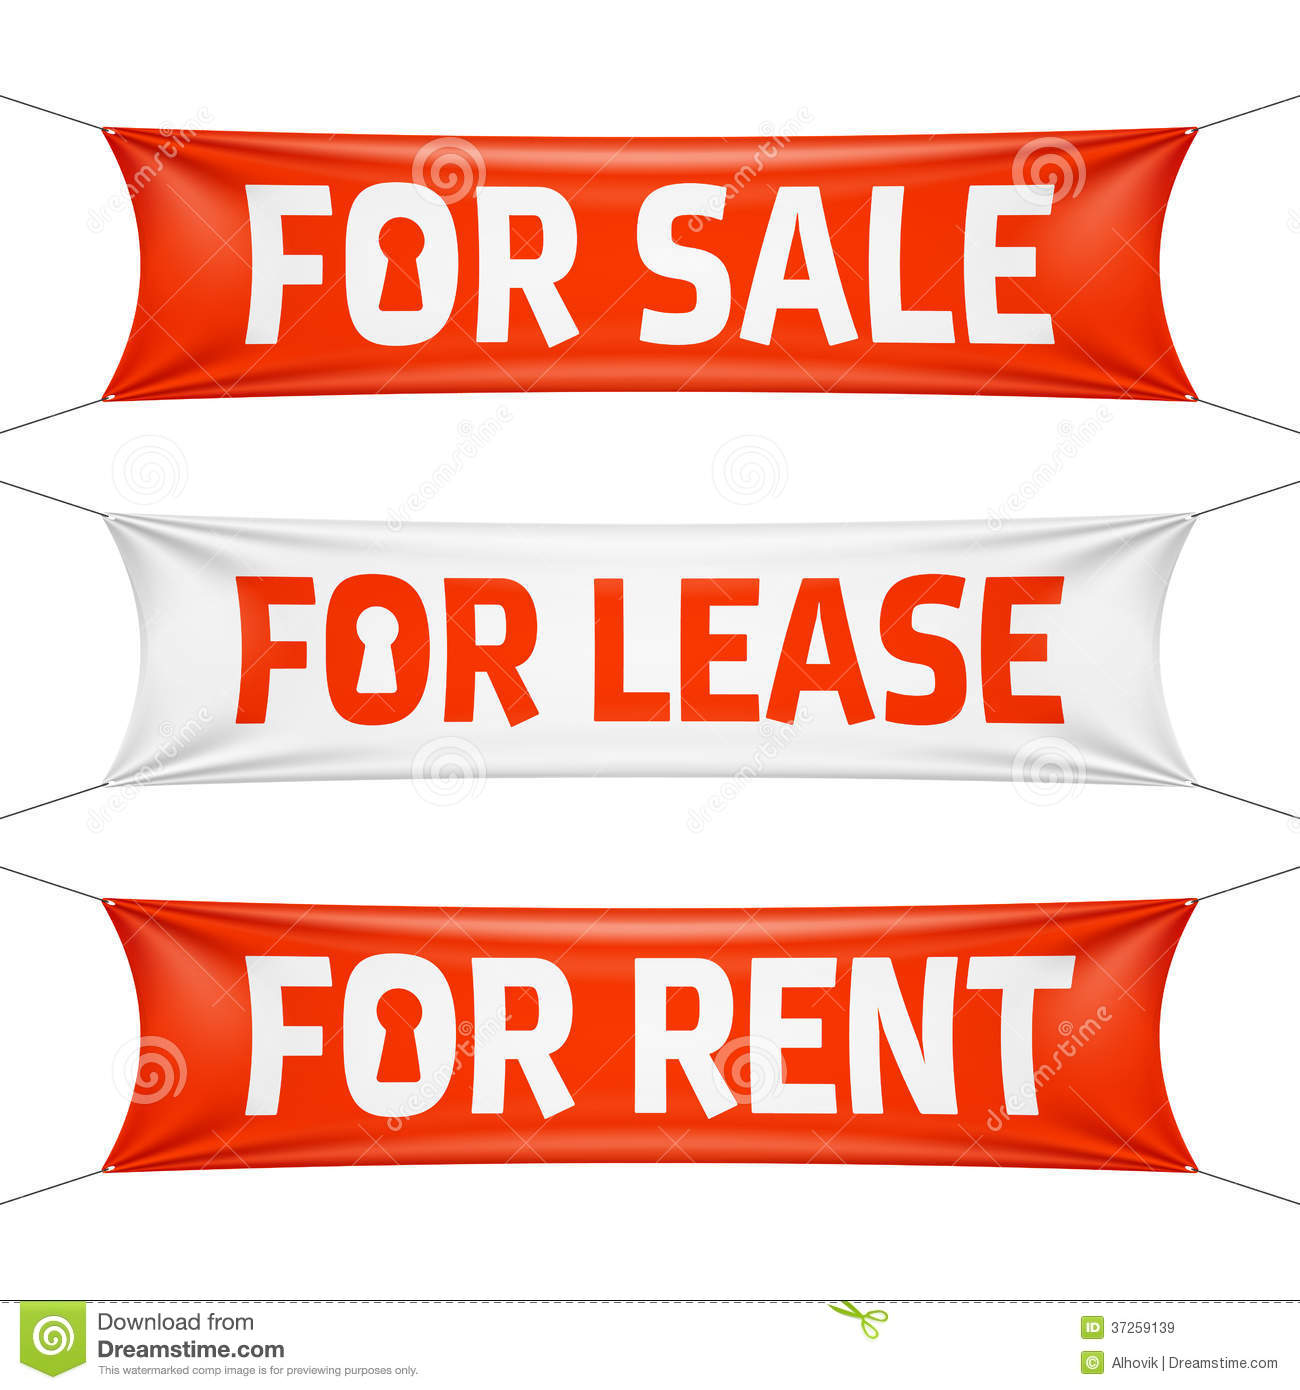 Fore Sale For Lease And For Rent Banners Royalty Free